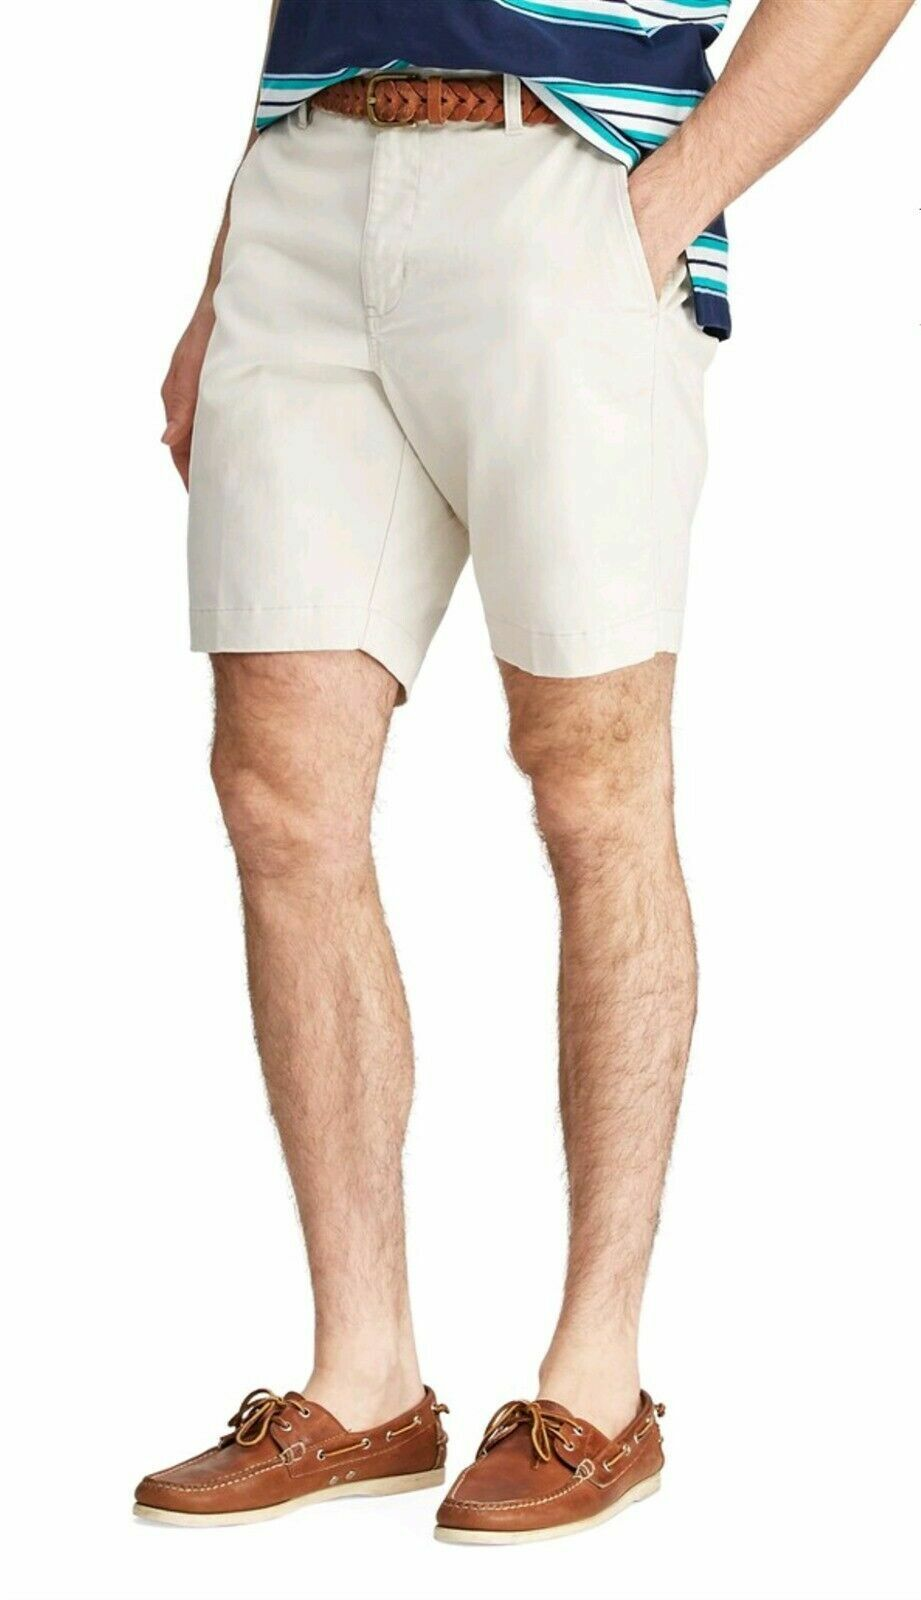 ***NEW CHAPS CLASSIC-FIT COTTON STRETCH FLAT FRONT SHORTS STONE MEN'S SIZE 42 Clothing, Shoes & Accessories